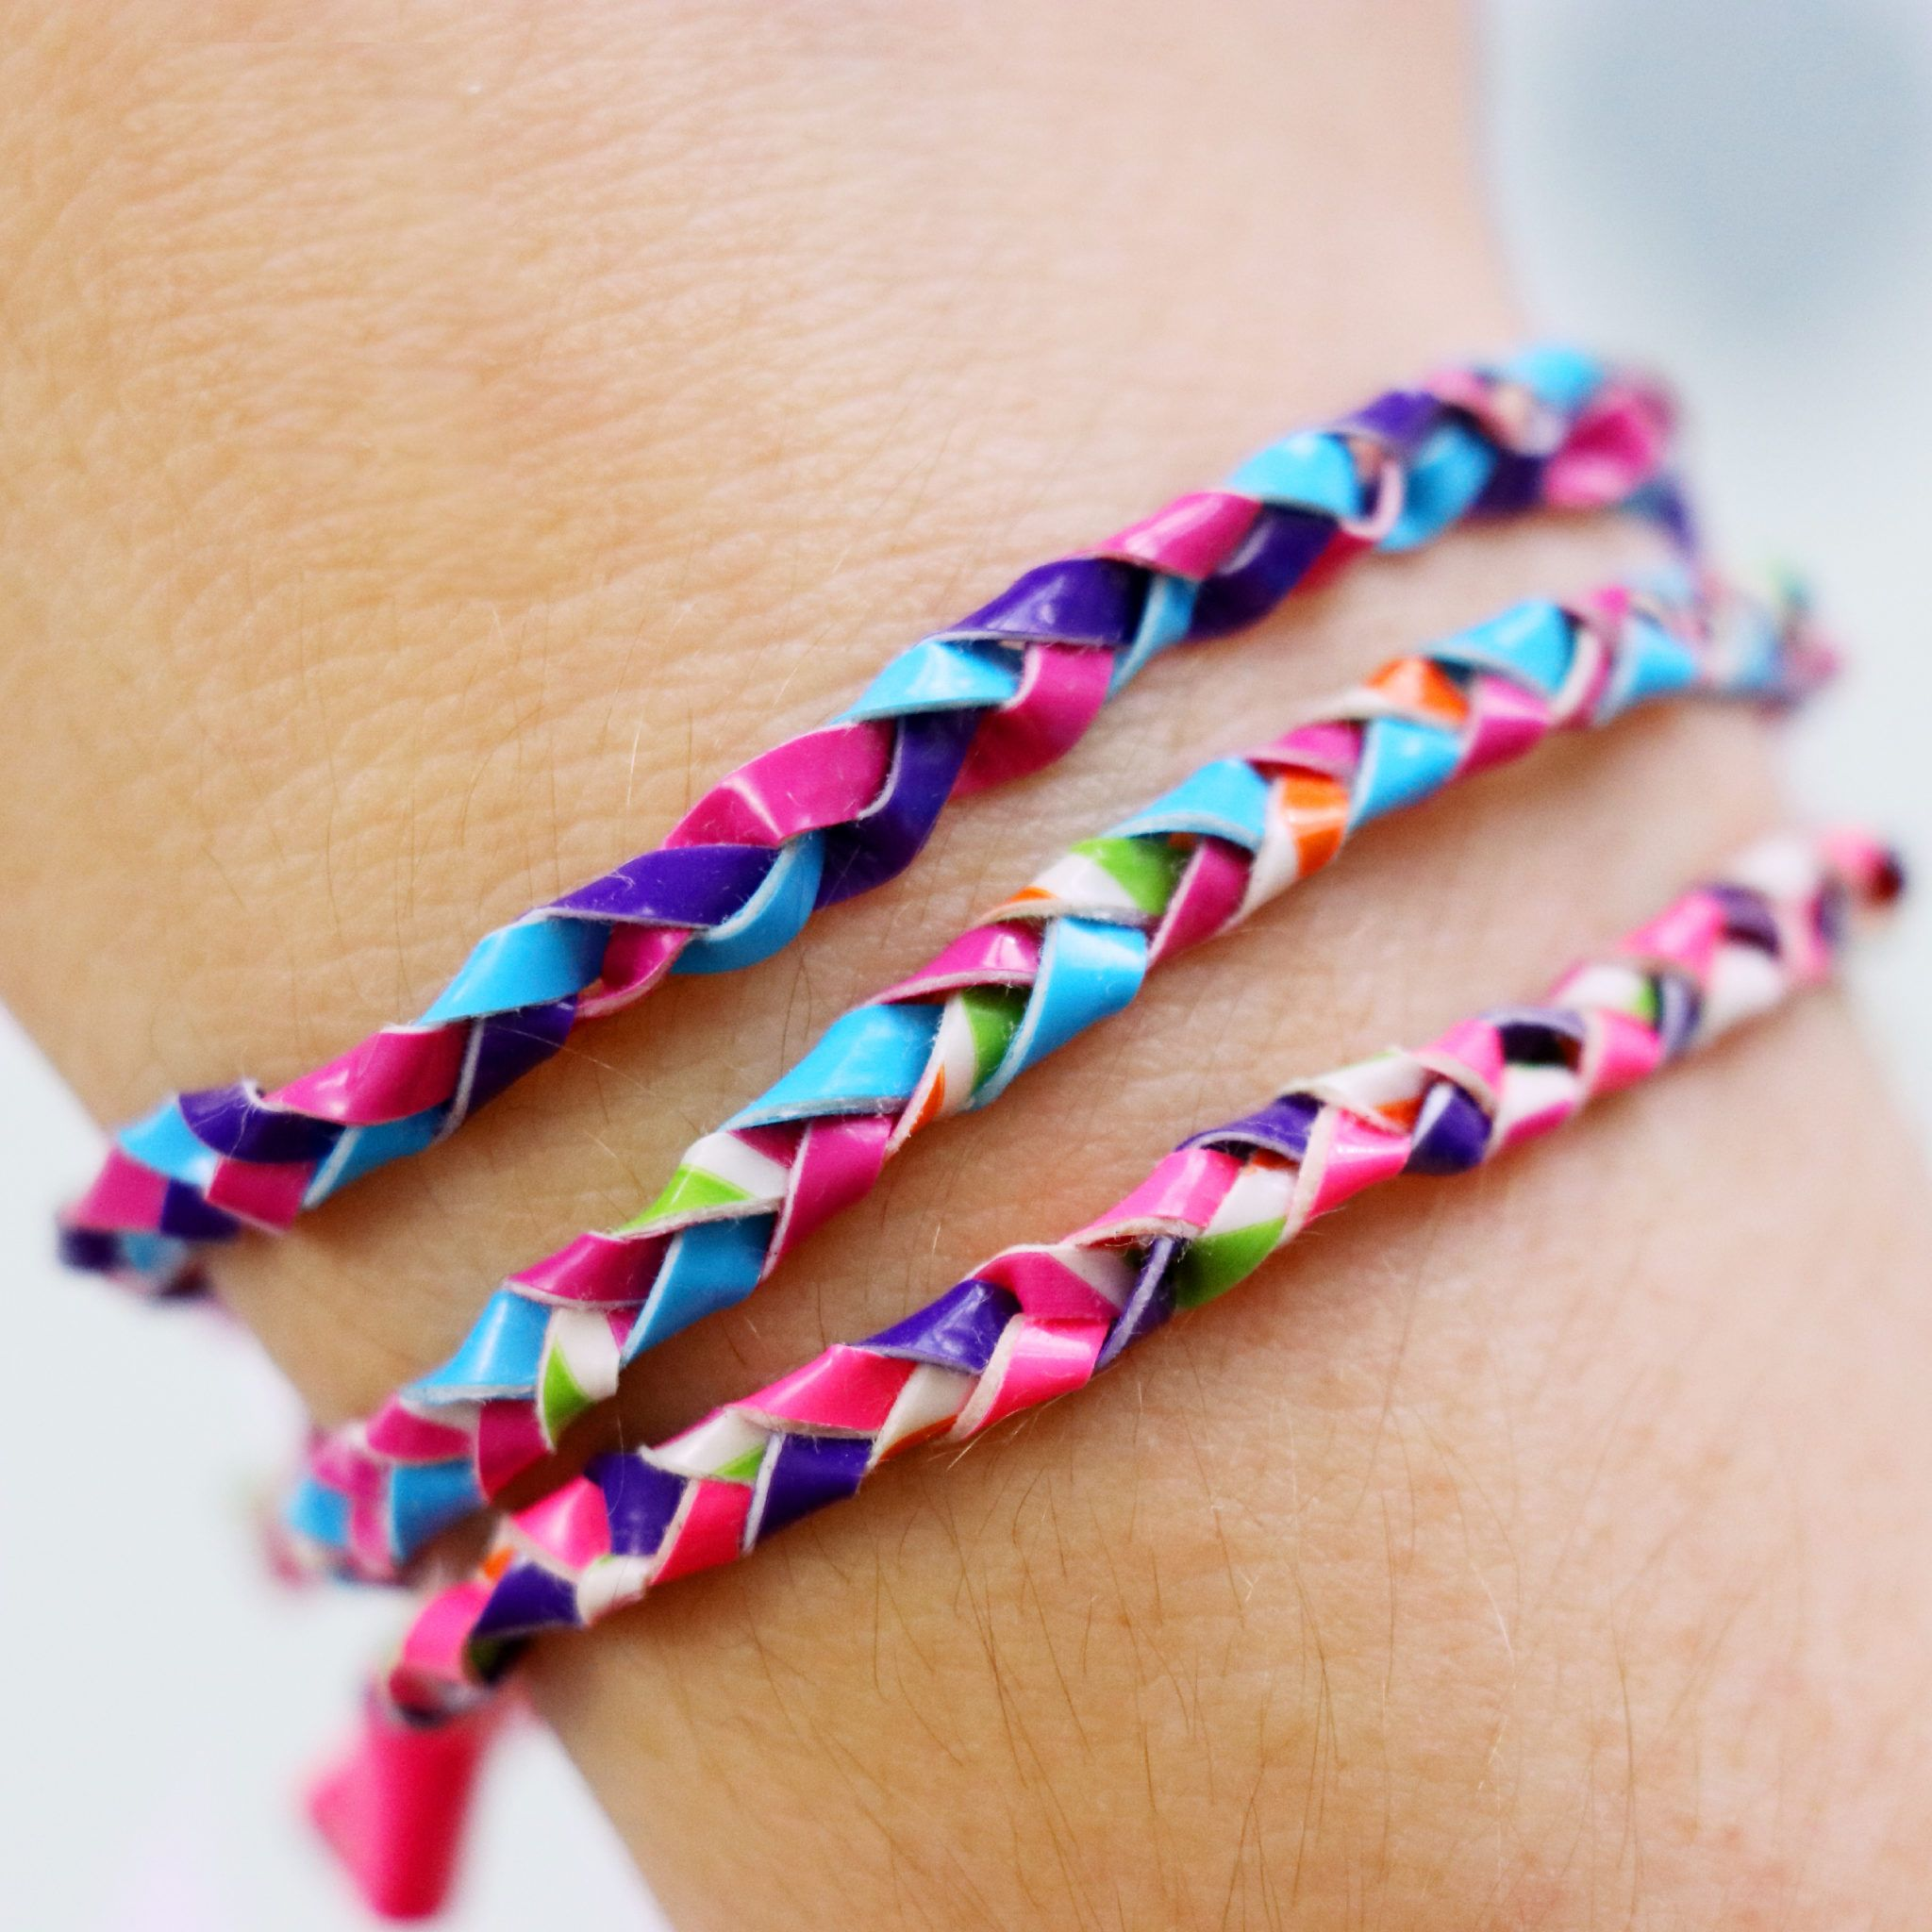 Diy Duct Tape Woven Friendship Bracelets Easy Cute